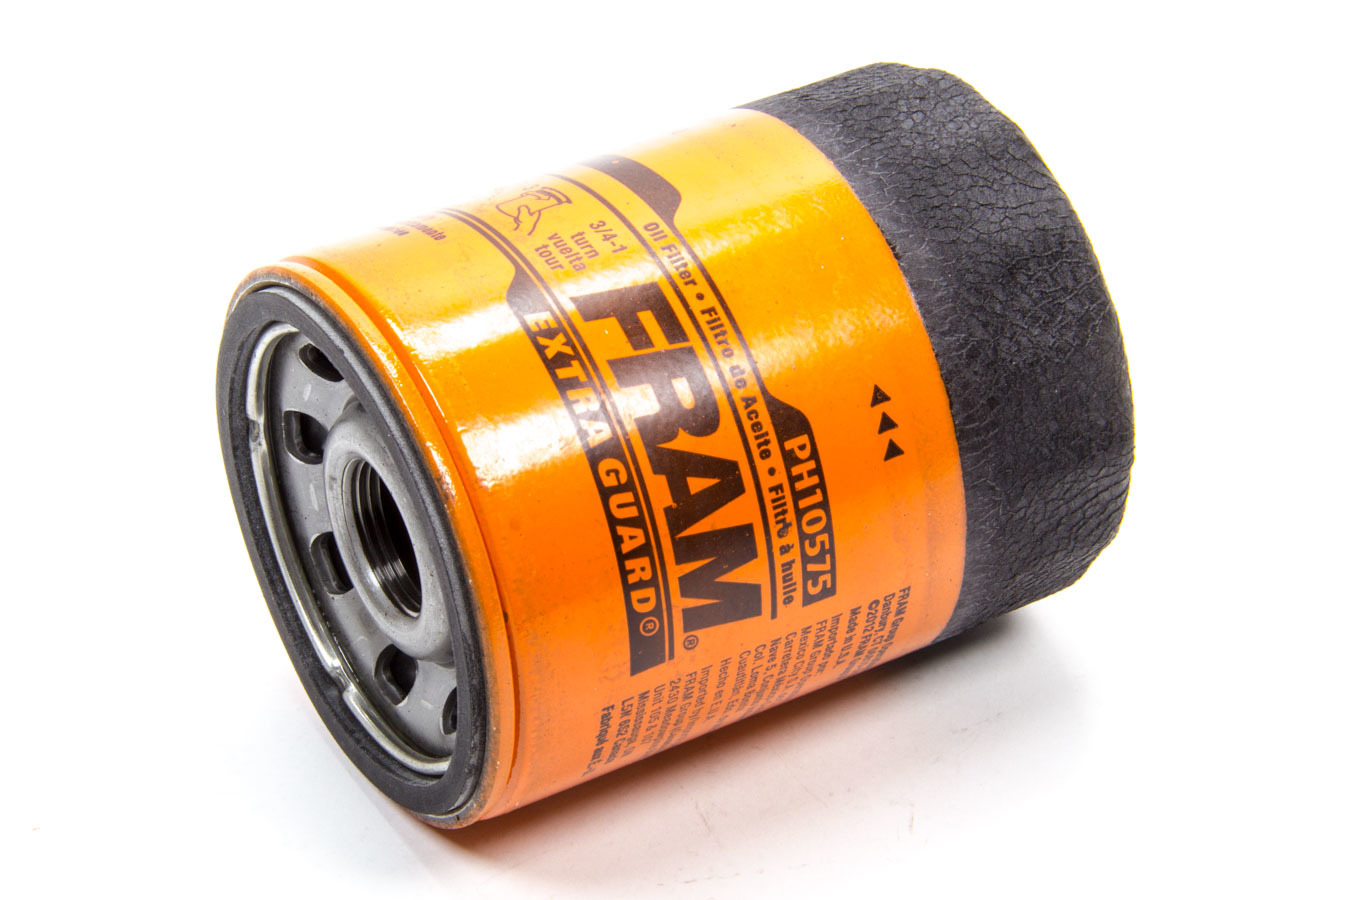 Fram PH10575 Oil Filter, Extra Guard, Canister, Screw-On, 4 in Tall, 22 mm x 1.50 Thread, Steel, Orange, Various Applications, Each